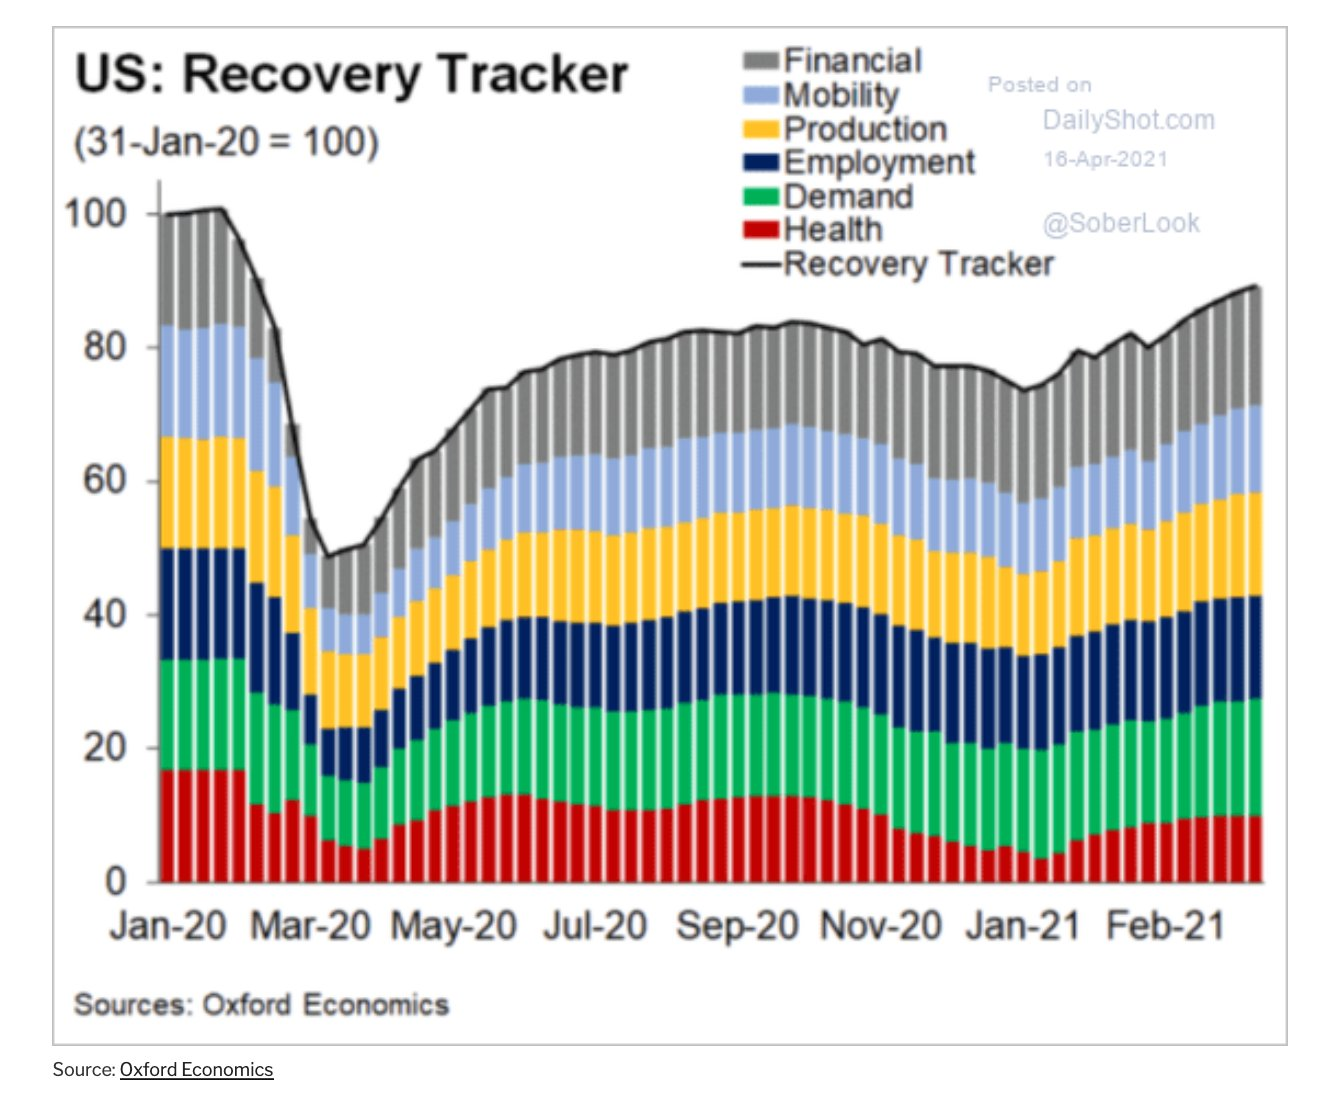 US economic rebound still has some way to go according to this 'Recovery Tracker'